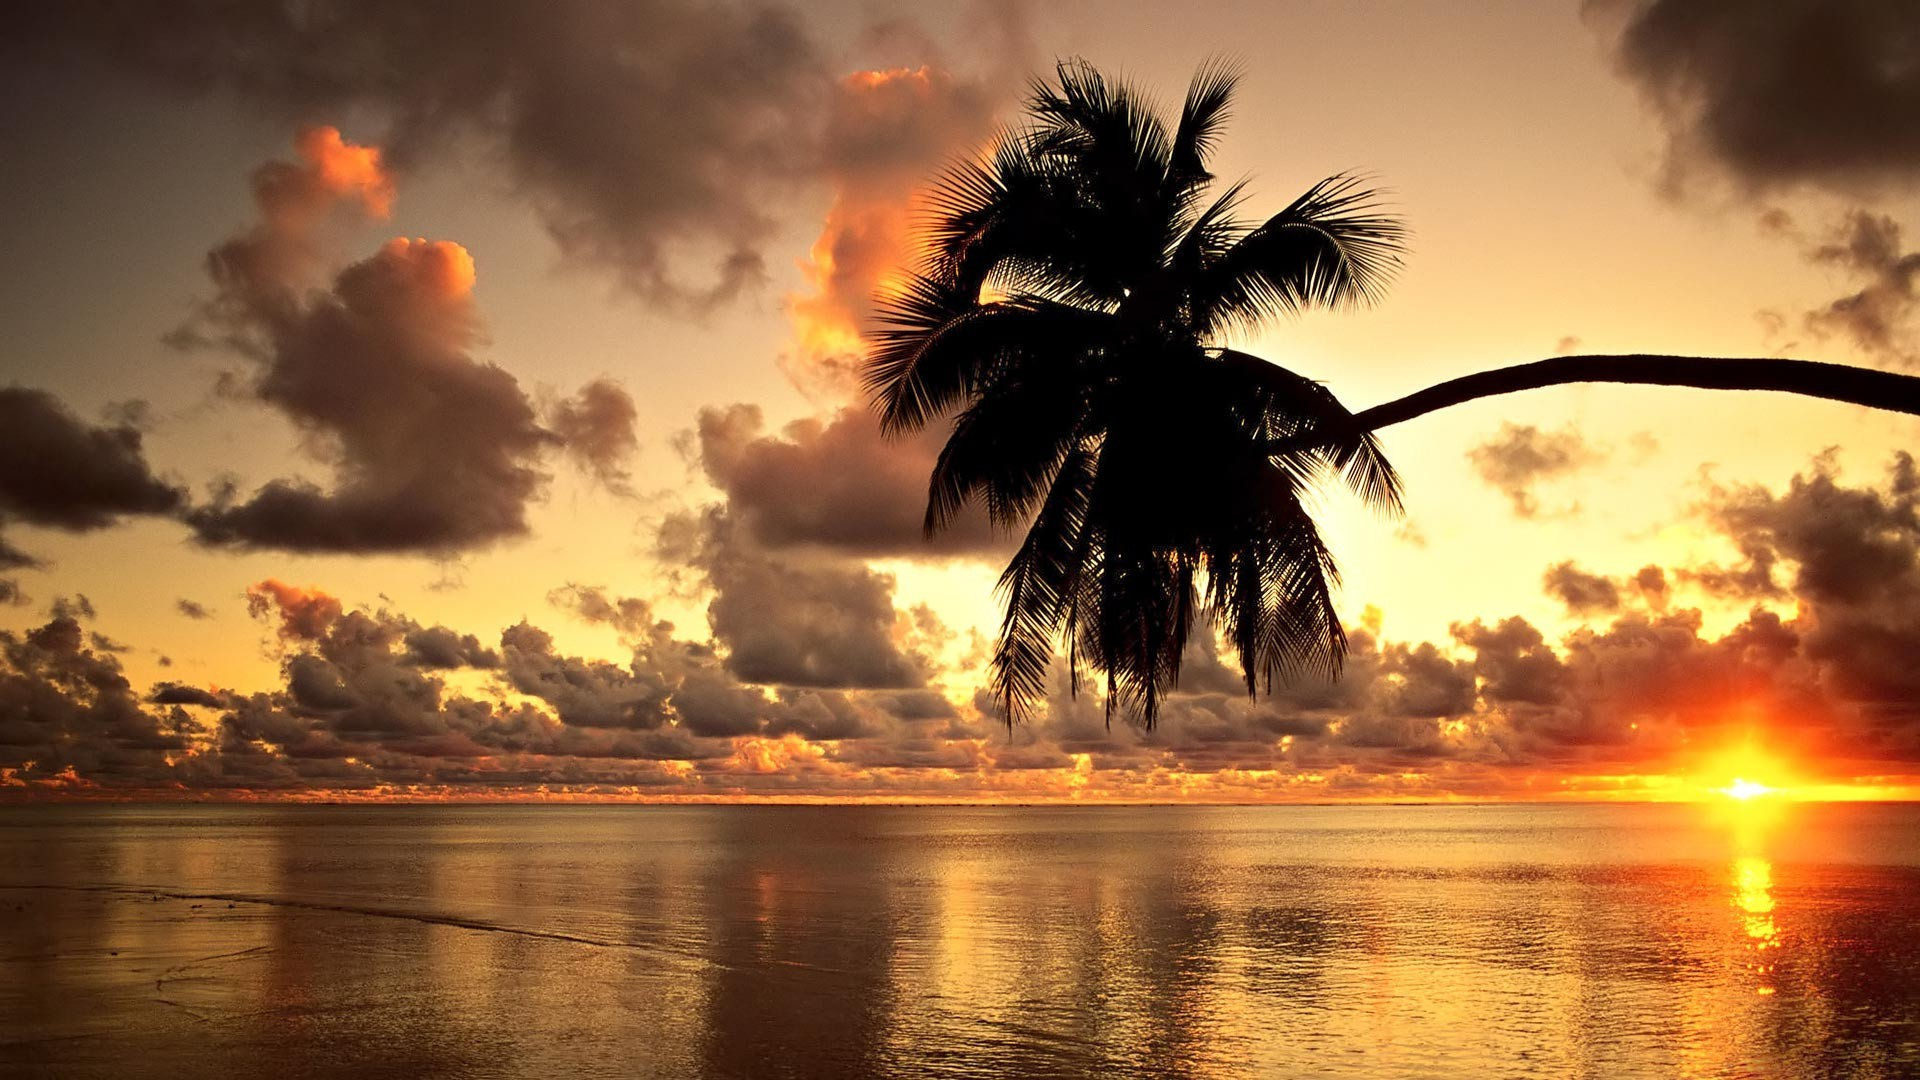 Beach Palm Tree Sunset Wallpaper Hd Wallpapers in 1920x1080px